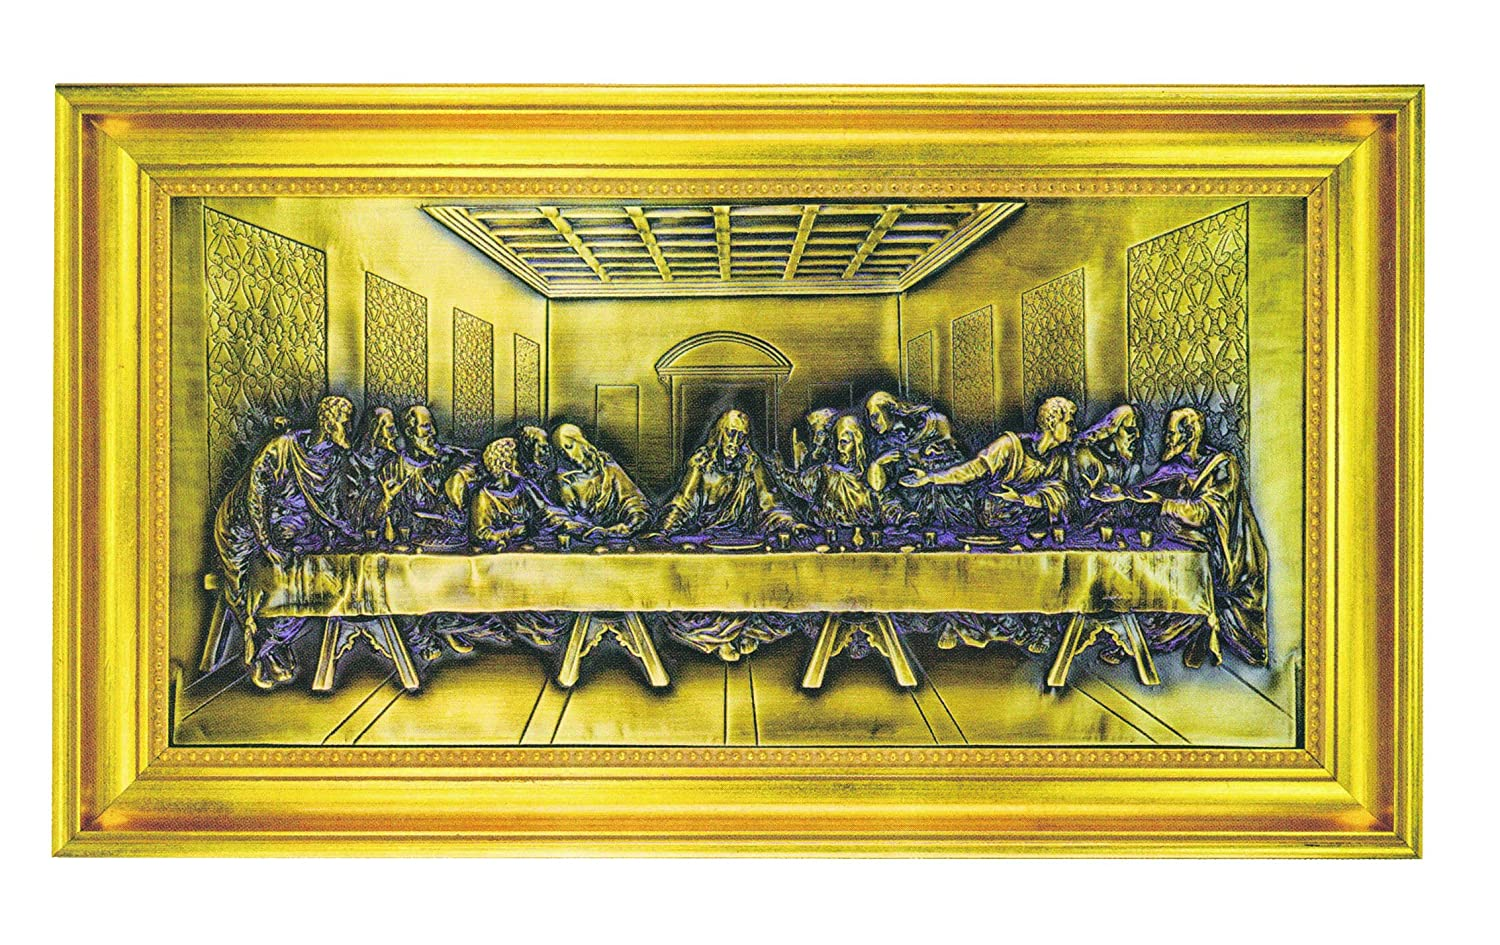 Amazon.com: The Last Supper Relief Plaque in Gold Leaf Frame ...